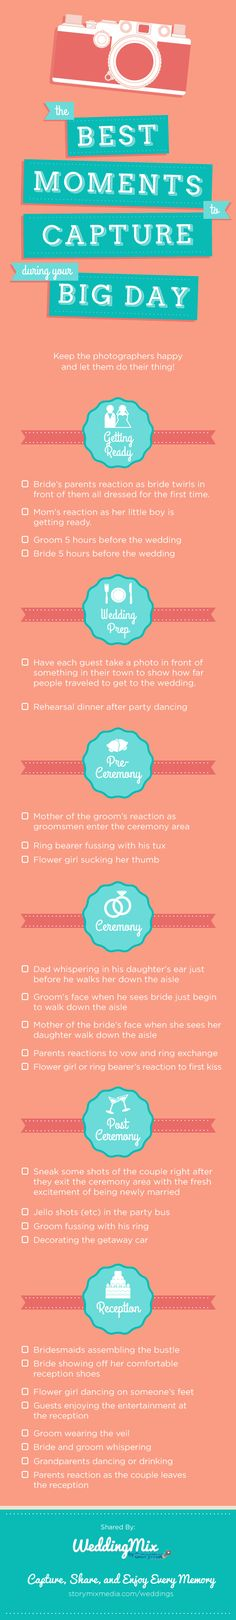 The best moments to capture during the wedding. These are the special memories that are so easy to miss and youll want to re-live. Print this out! Thanks for sharing WeddingMix.